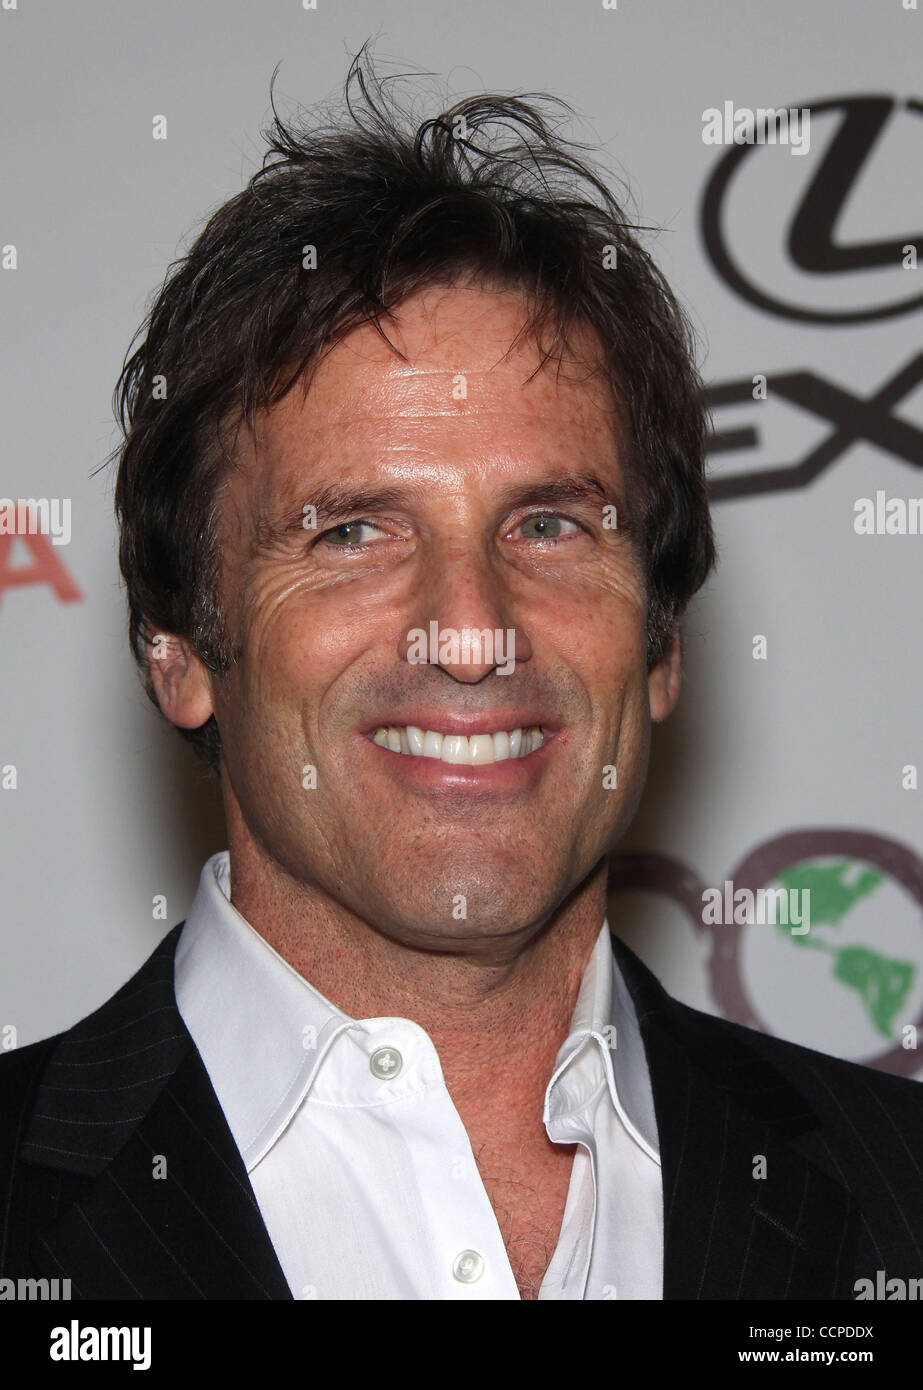 Hart Bochner naked (51 foto and video), Tits, Paparazzi, Boobs, swimsuit 2019